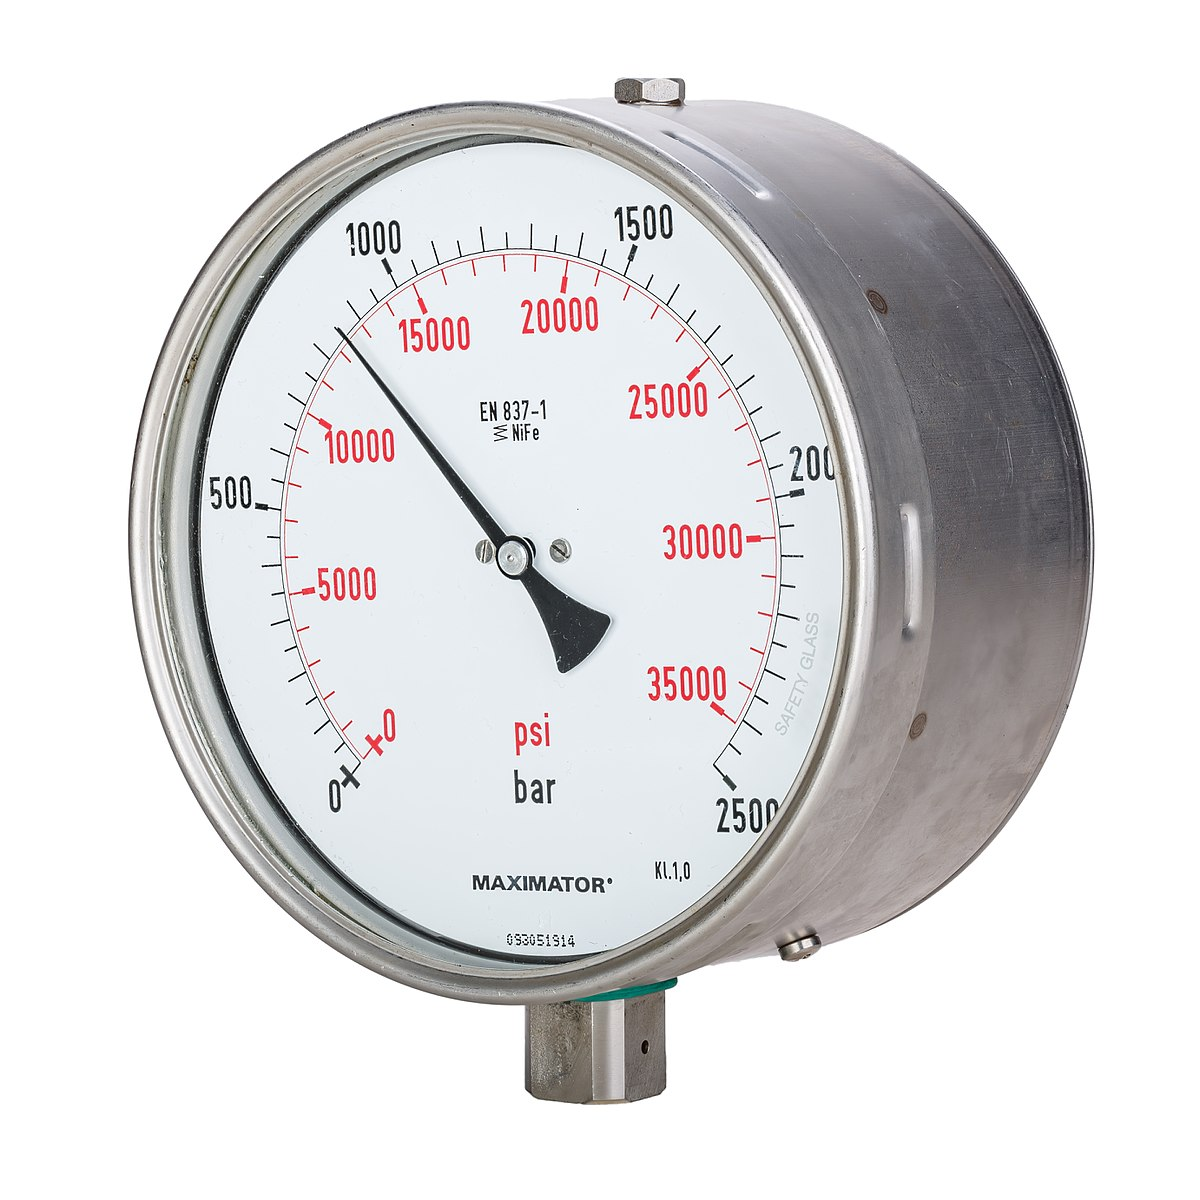 High Pressure Vacuum Gauge : Pressure measurement wikipedia